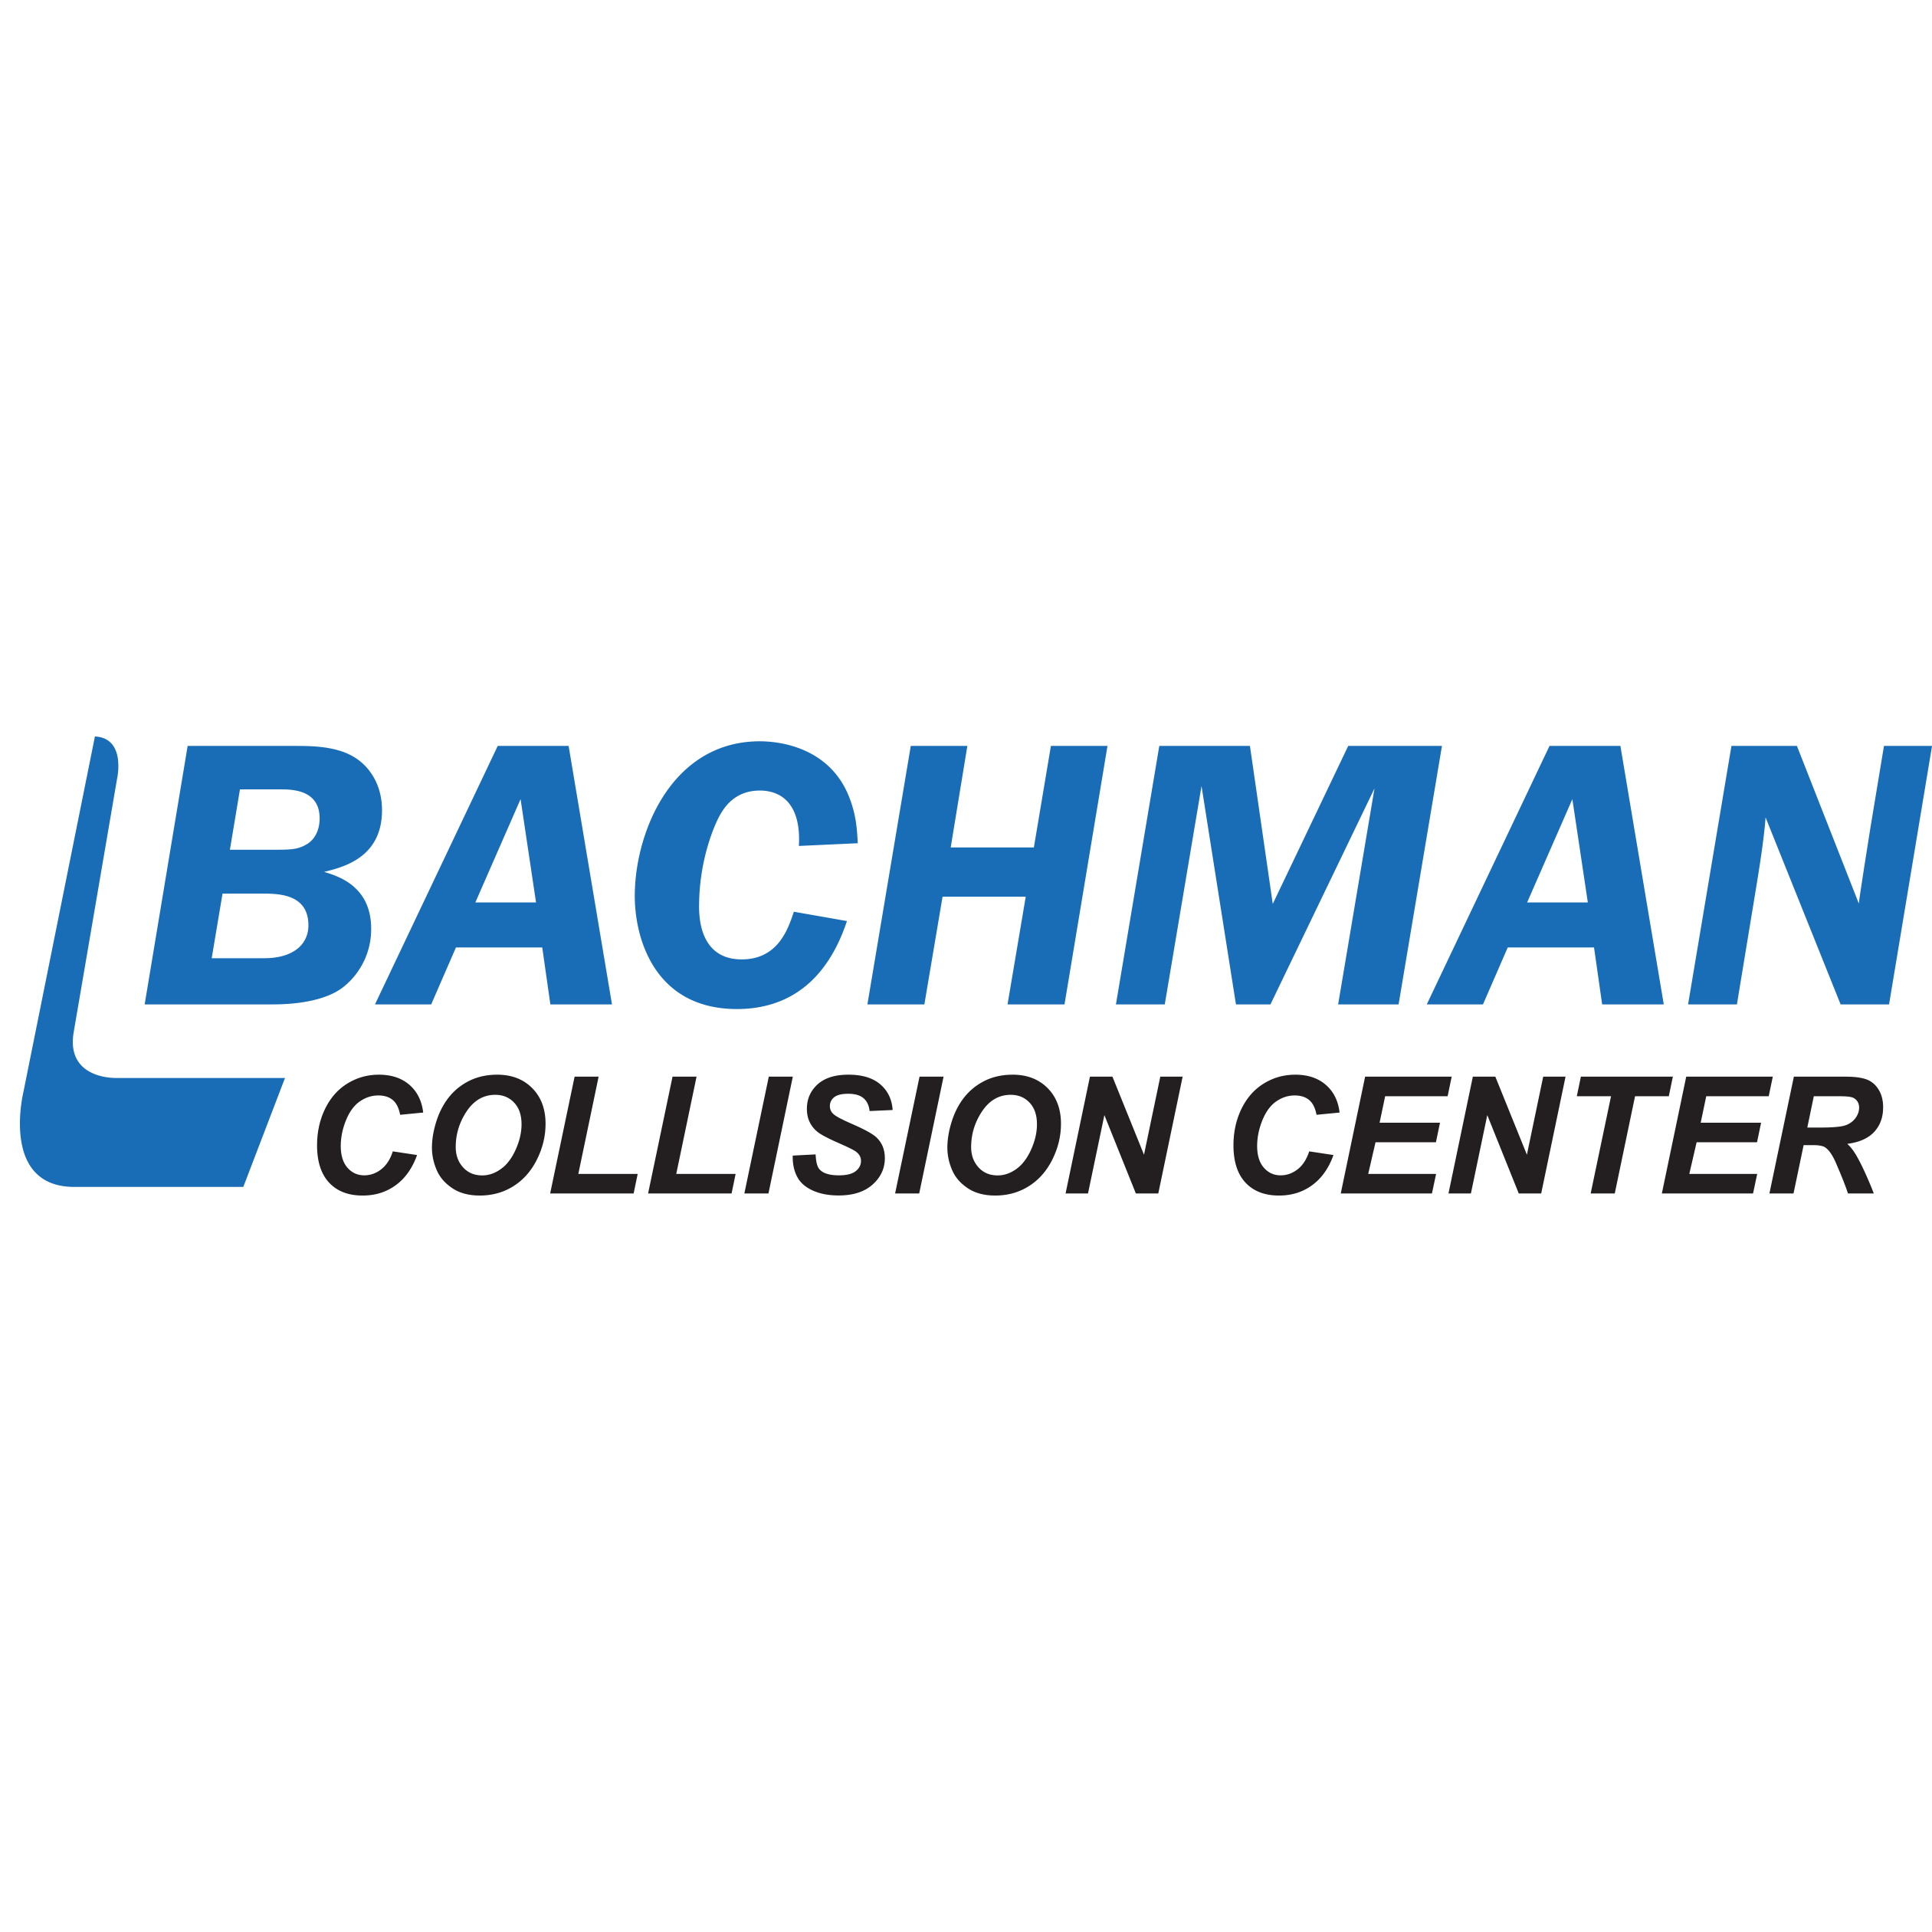 Bachman Collision Center